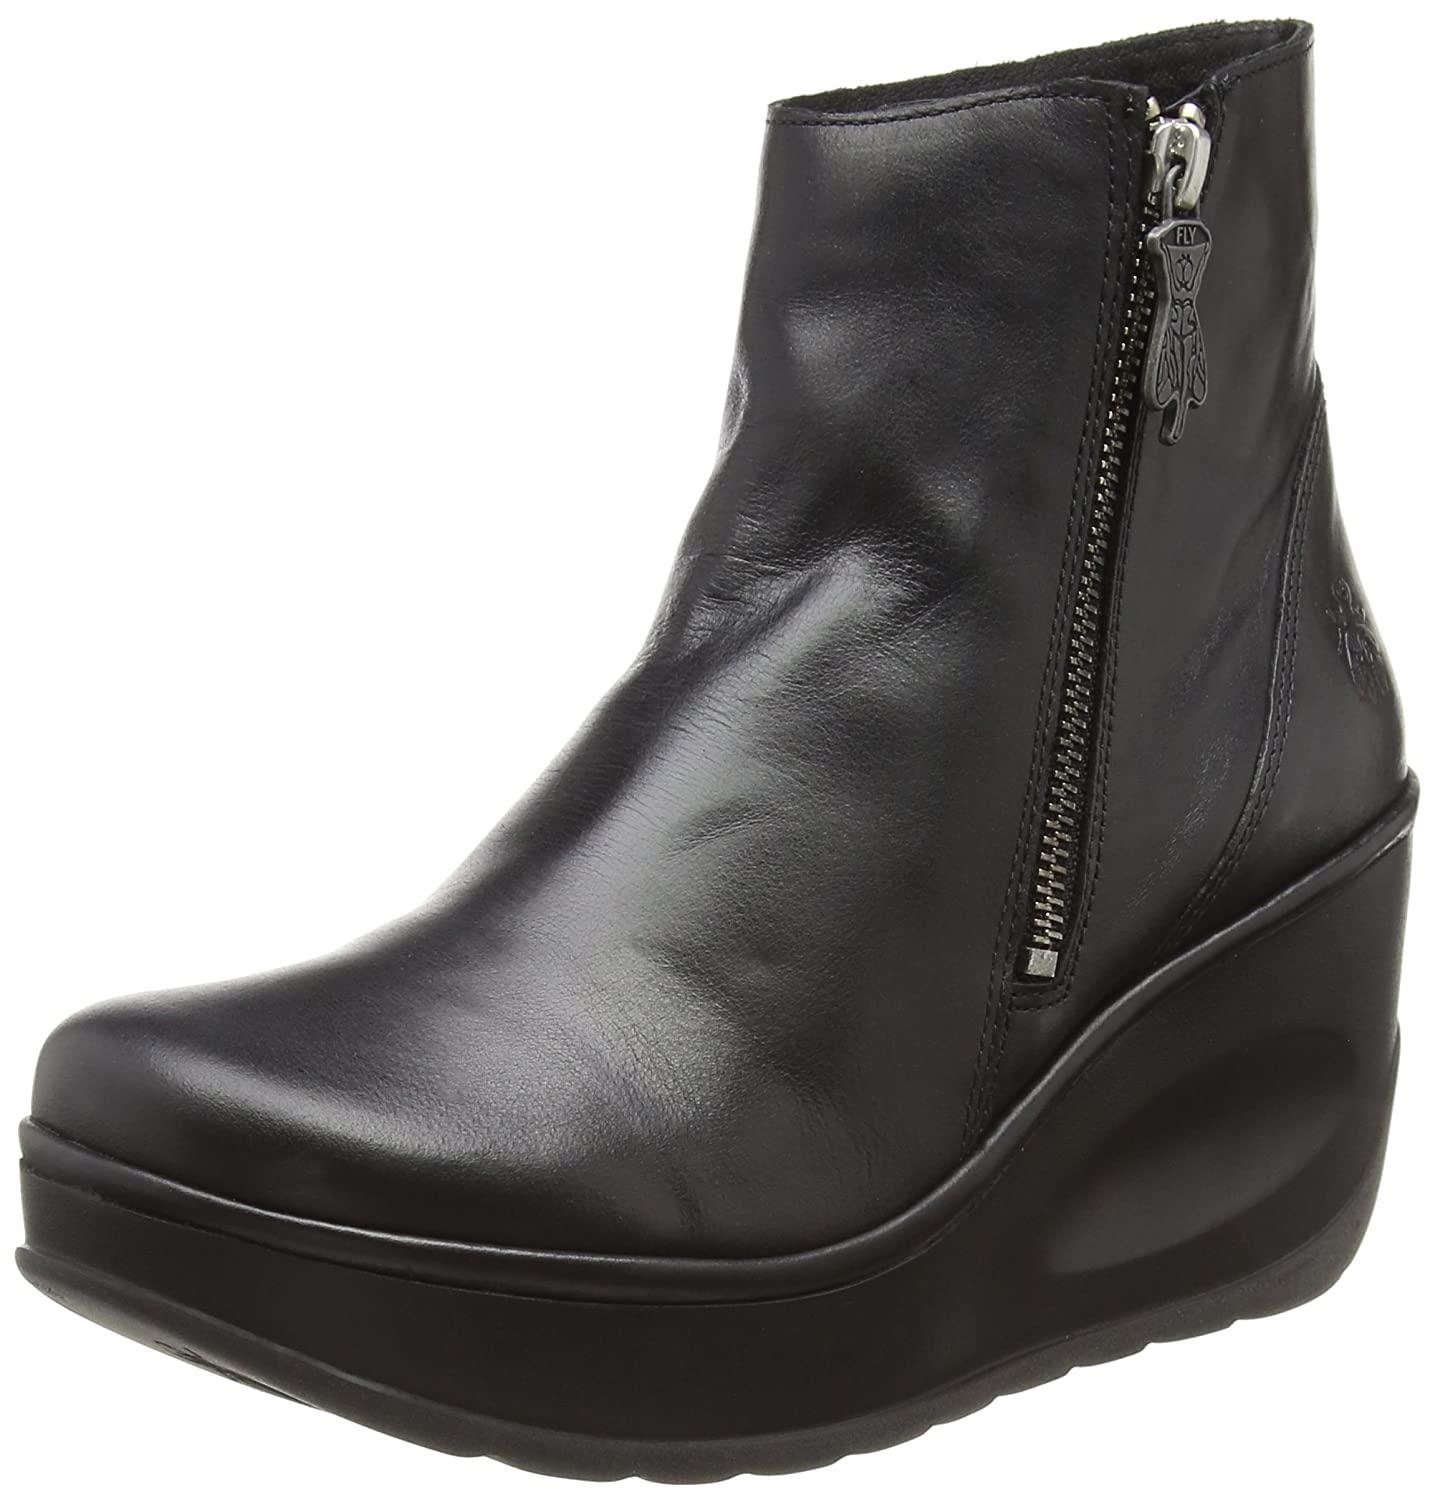 Fly London B078WJRKQL Jome922fly, Bottines Femme Bottines Noir Noir (Black 000) ca05414 - jessicalock.space